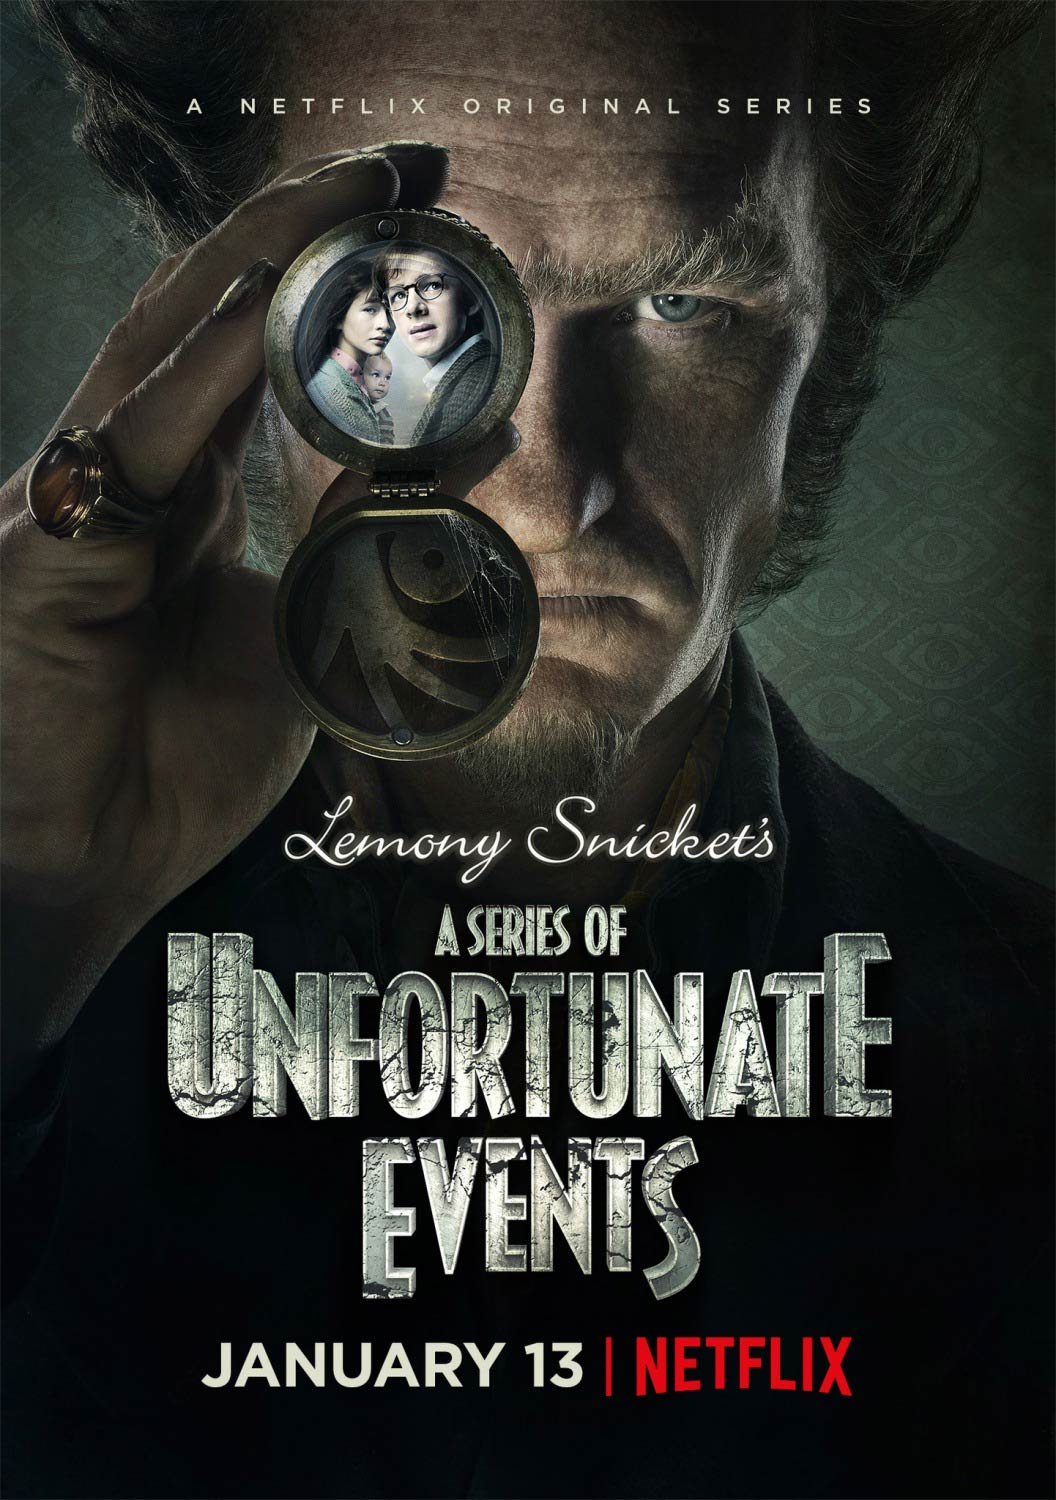 Les Désastreuses Aventures des orphelins Baudelaire – de son titre original A Serie of Unfortunate Events.